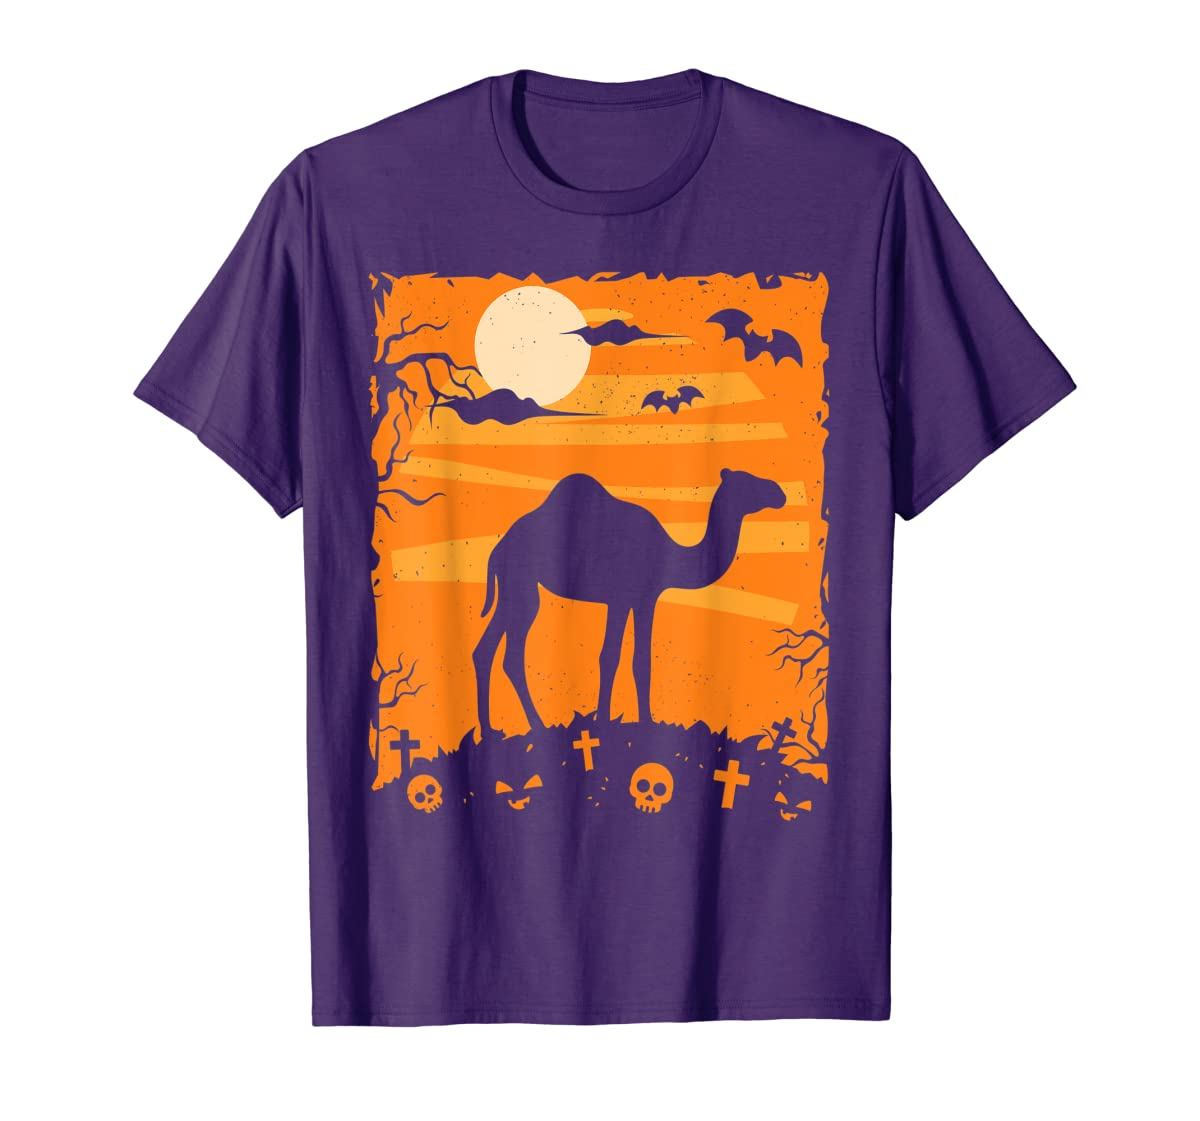 Camel Halloween Costume Animal Funny Pumpkin Outfit Gift T-Shirt-Men's T-Shirt-Purple